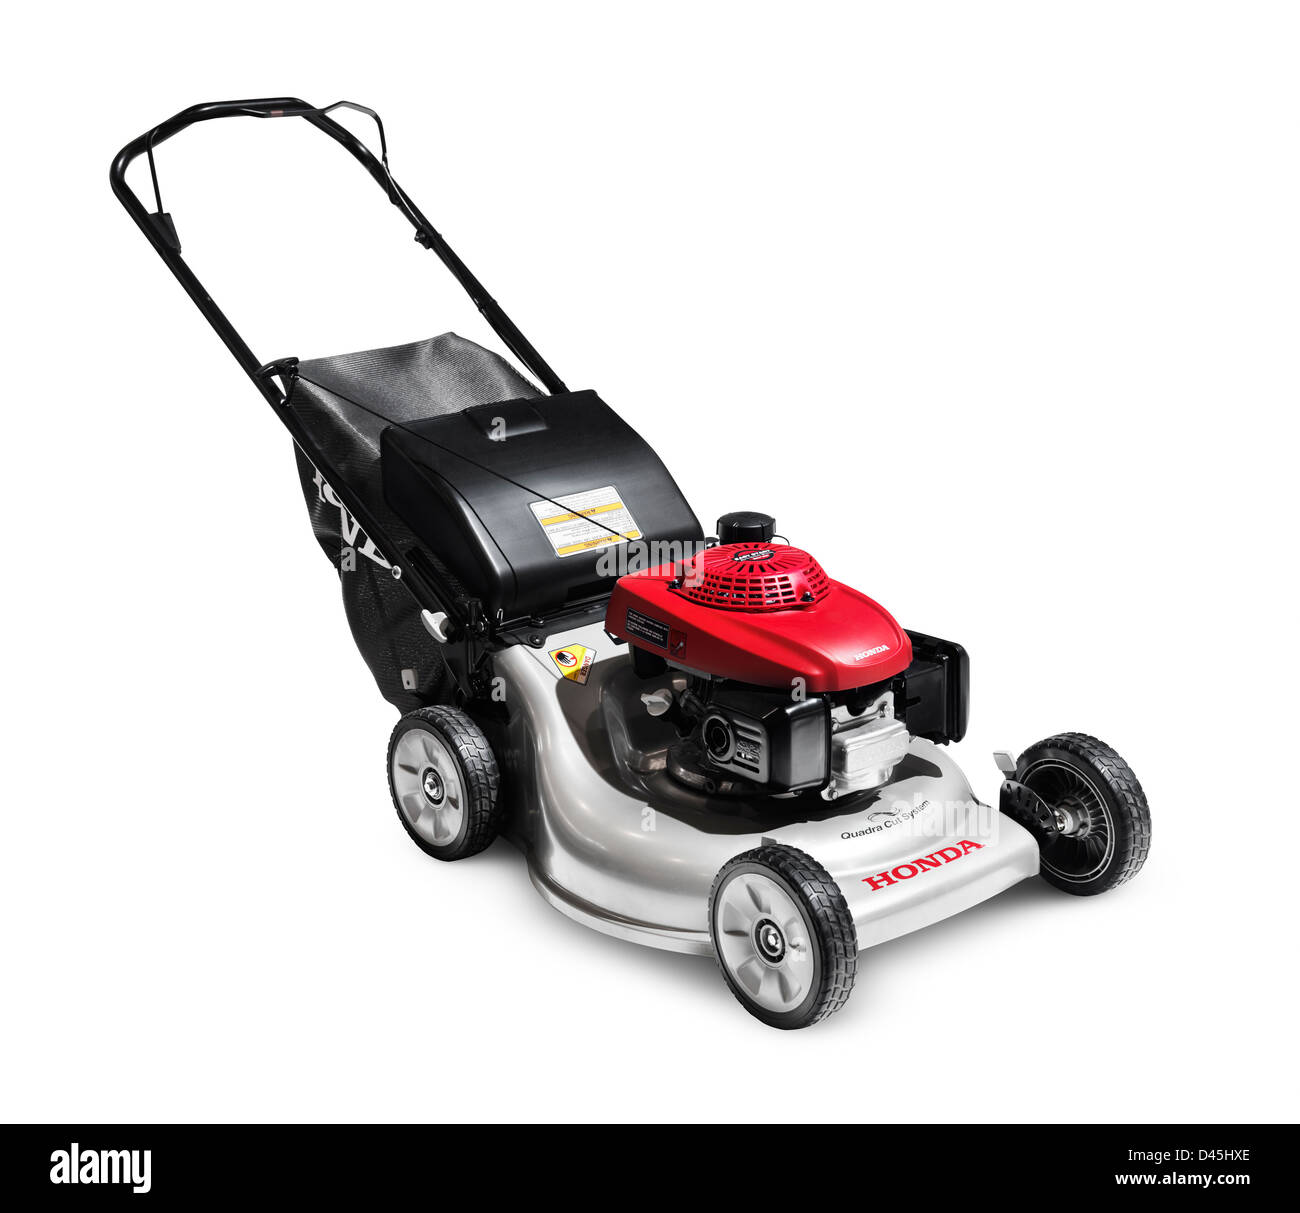 Honda lawn mower isolated on white background - Stock Image